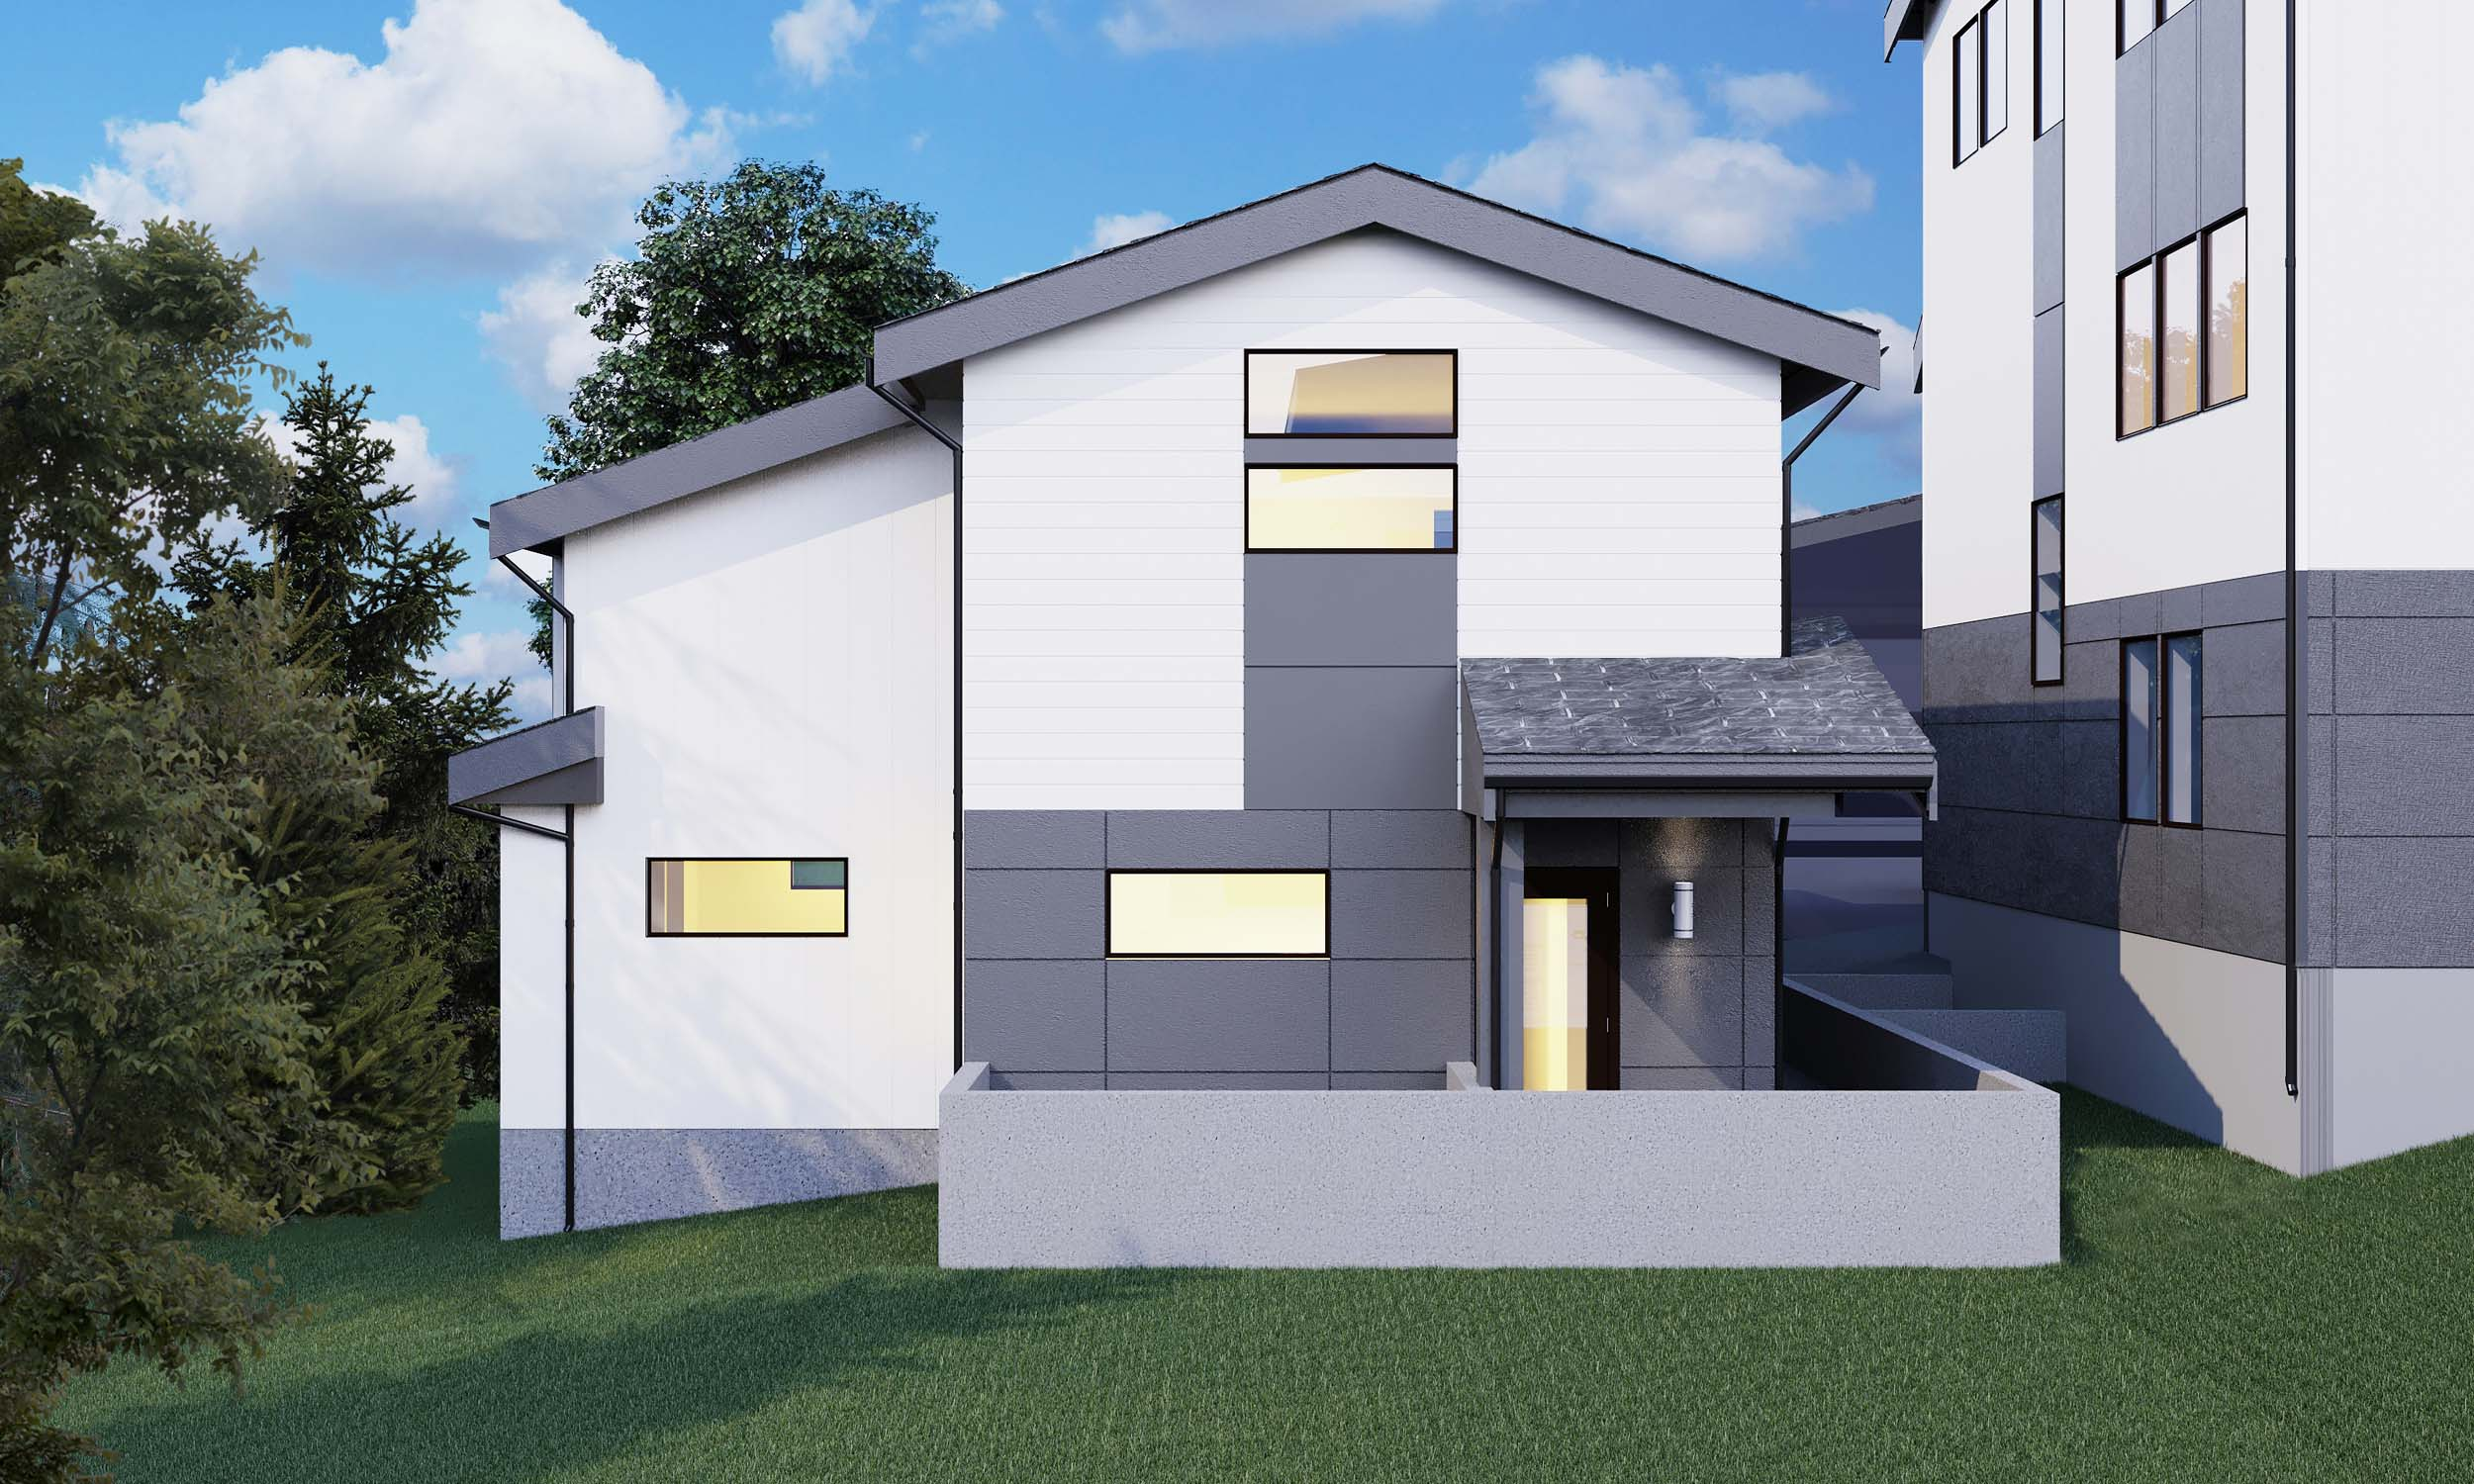 Custom design and construction of a two story DADU (Backyard Cottage) located at 5409 37th Ave SW, Seattle, WA 98126